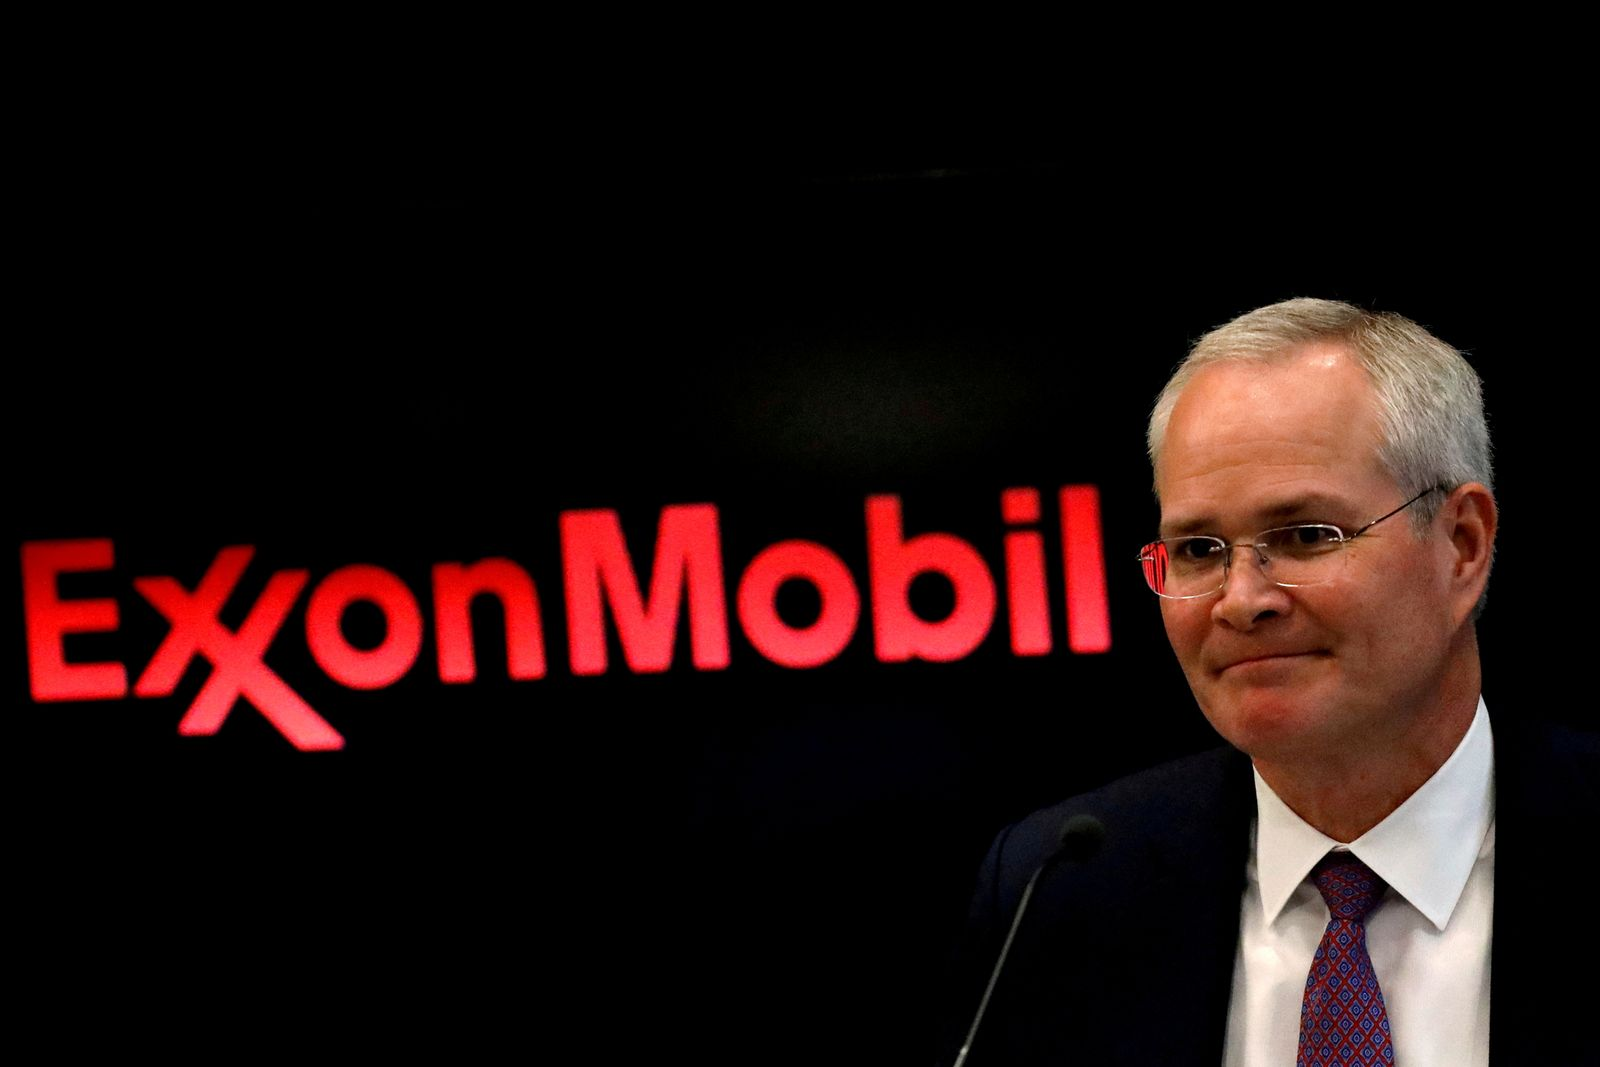 FILE PHOTO: FILE PHOTO: Darren Woods, Chairman & CEO, Exxon Mobil Corporation attends a news conference at the NYSE